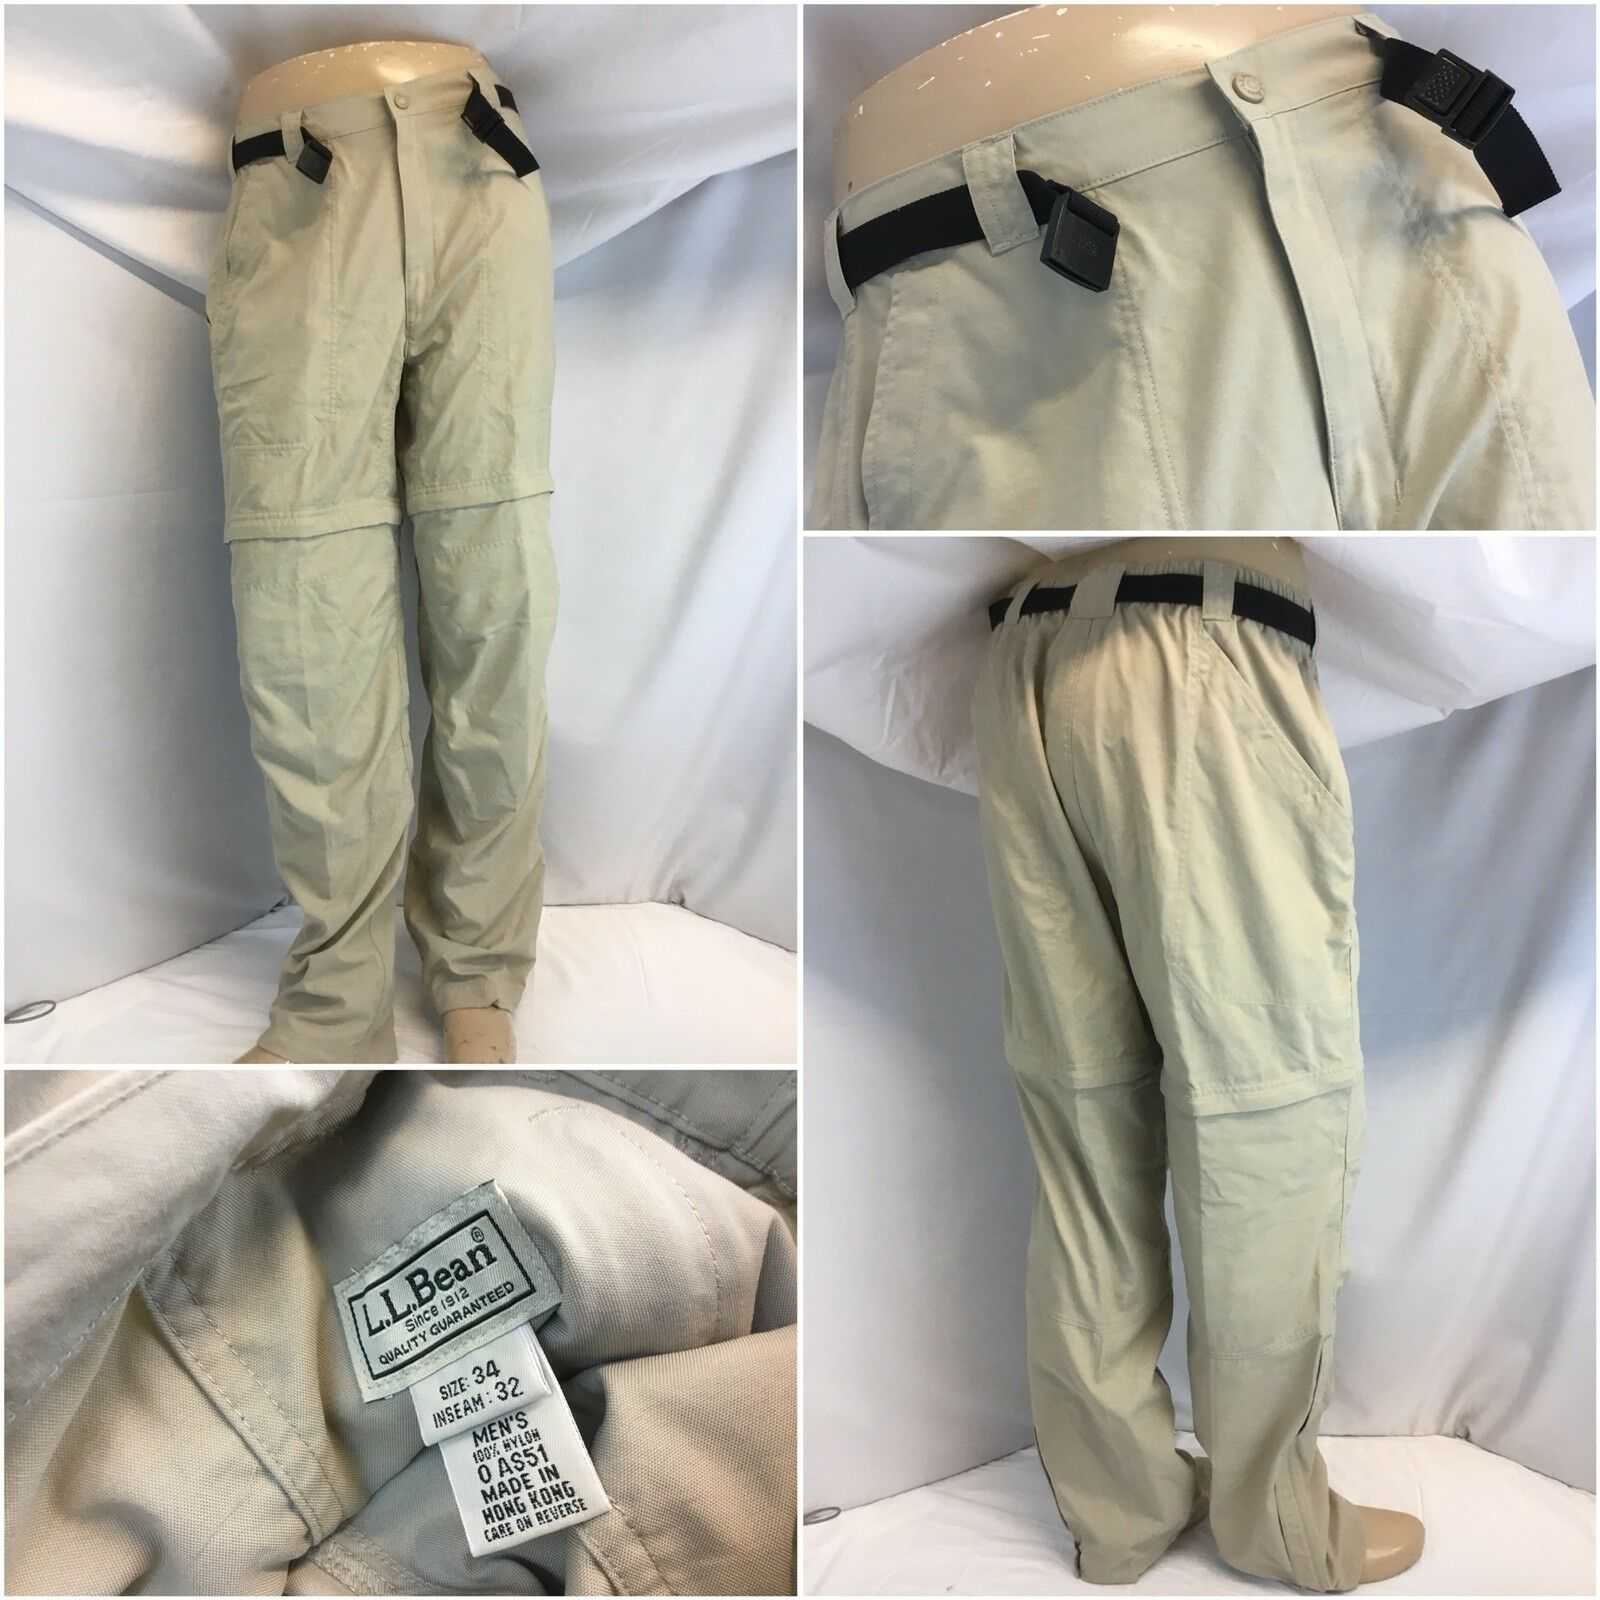 L.L. Bean Pants 34x32 Tan Nylon Zip Off Legs NWOT YGI F8-382